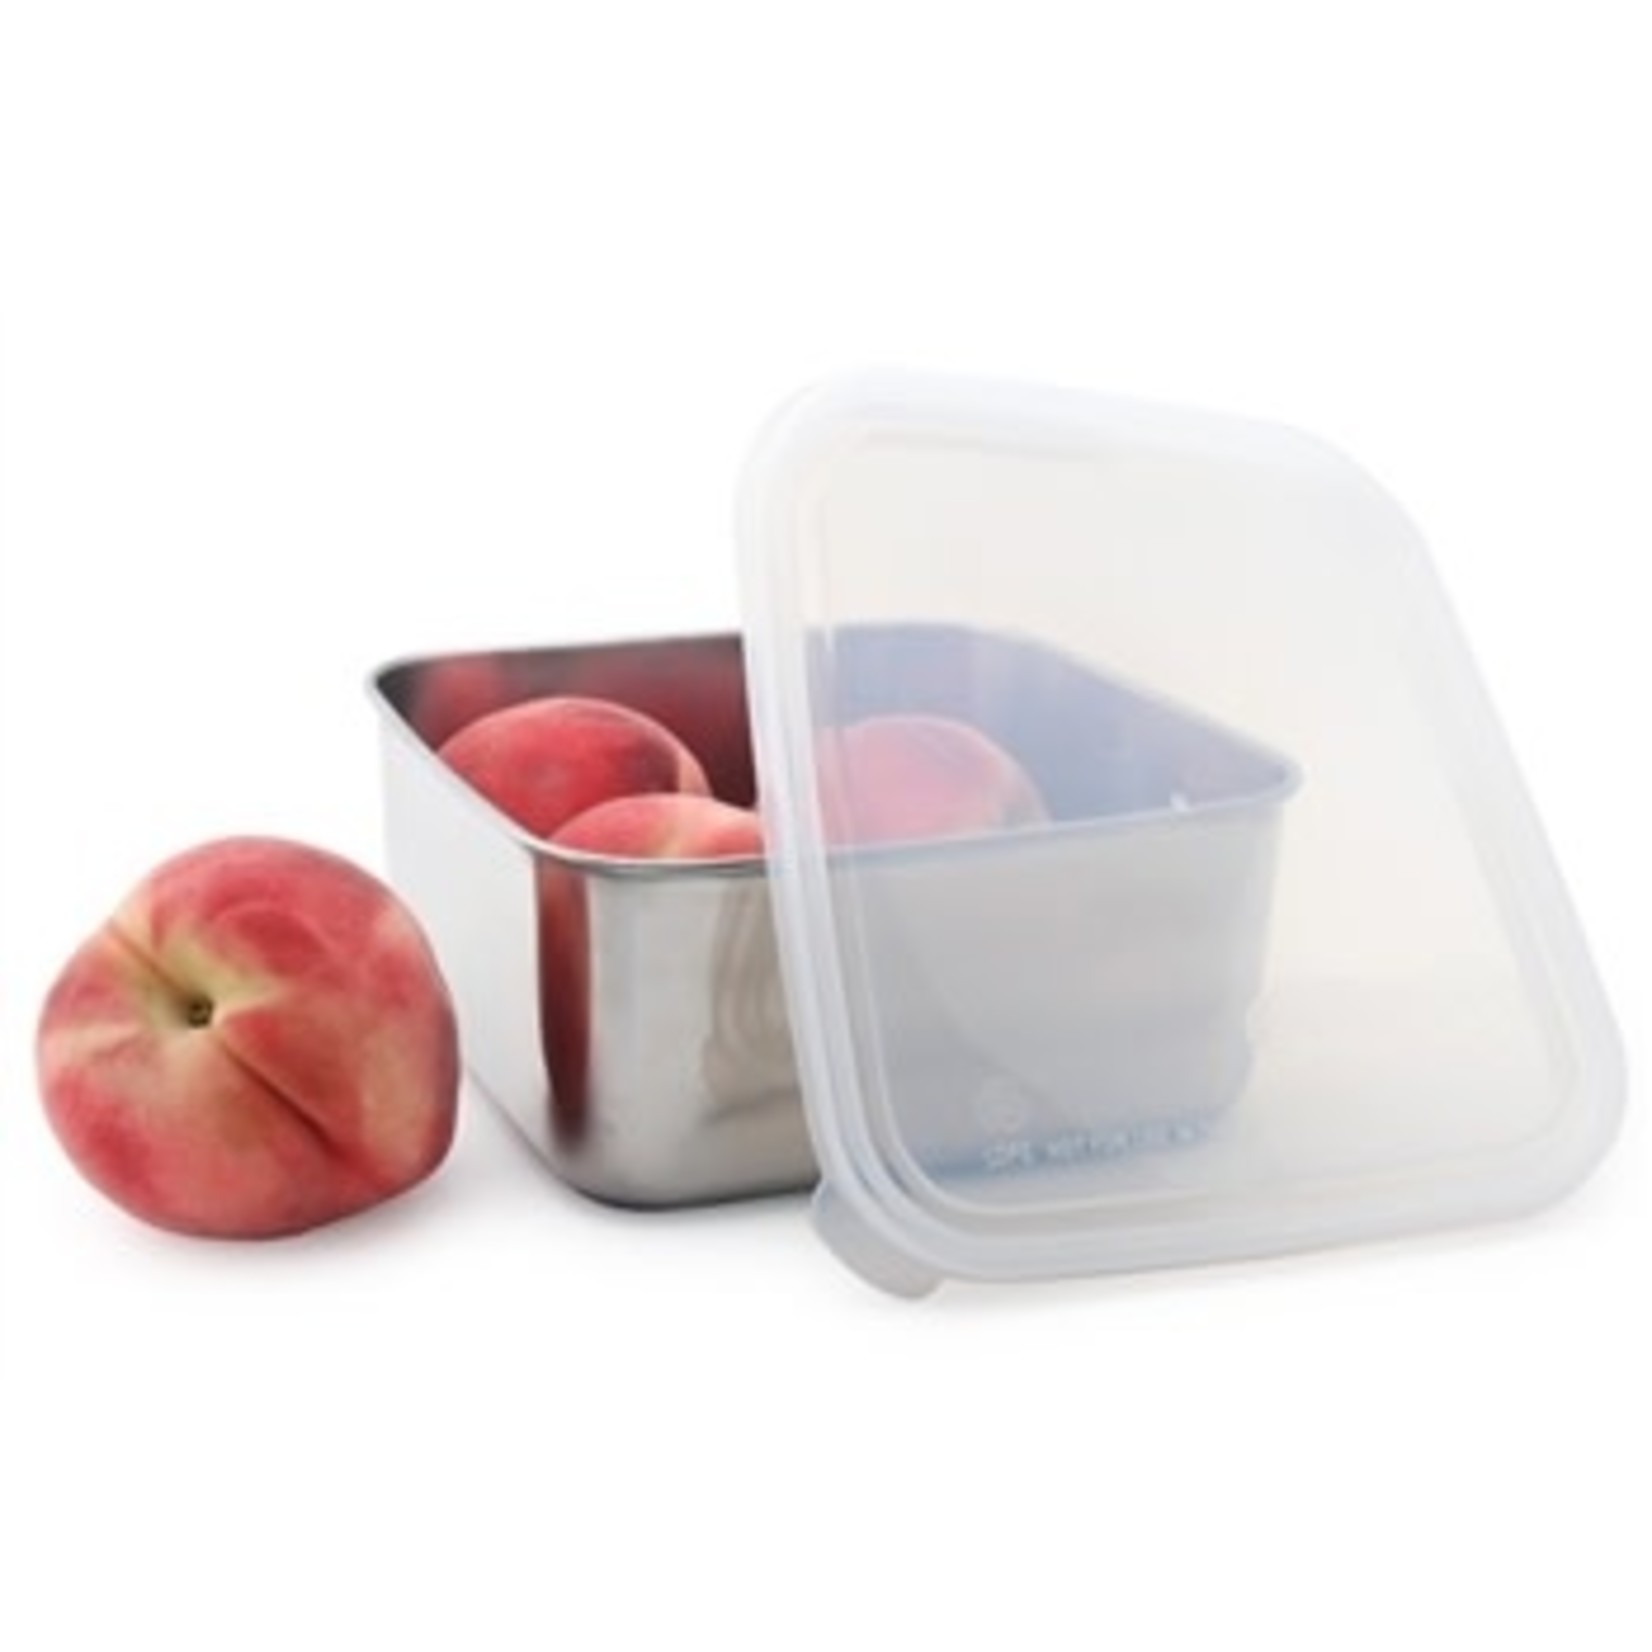 U-KONSERVE To-Go Container Large - Clear (50oz)